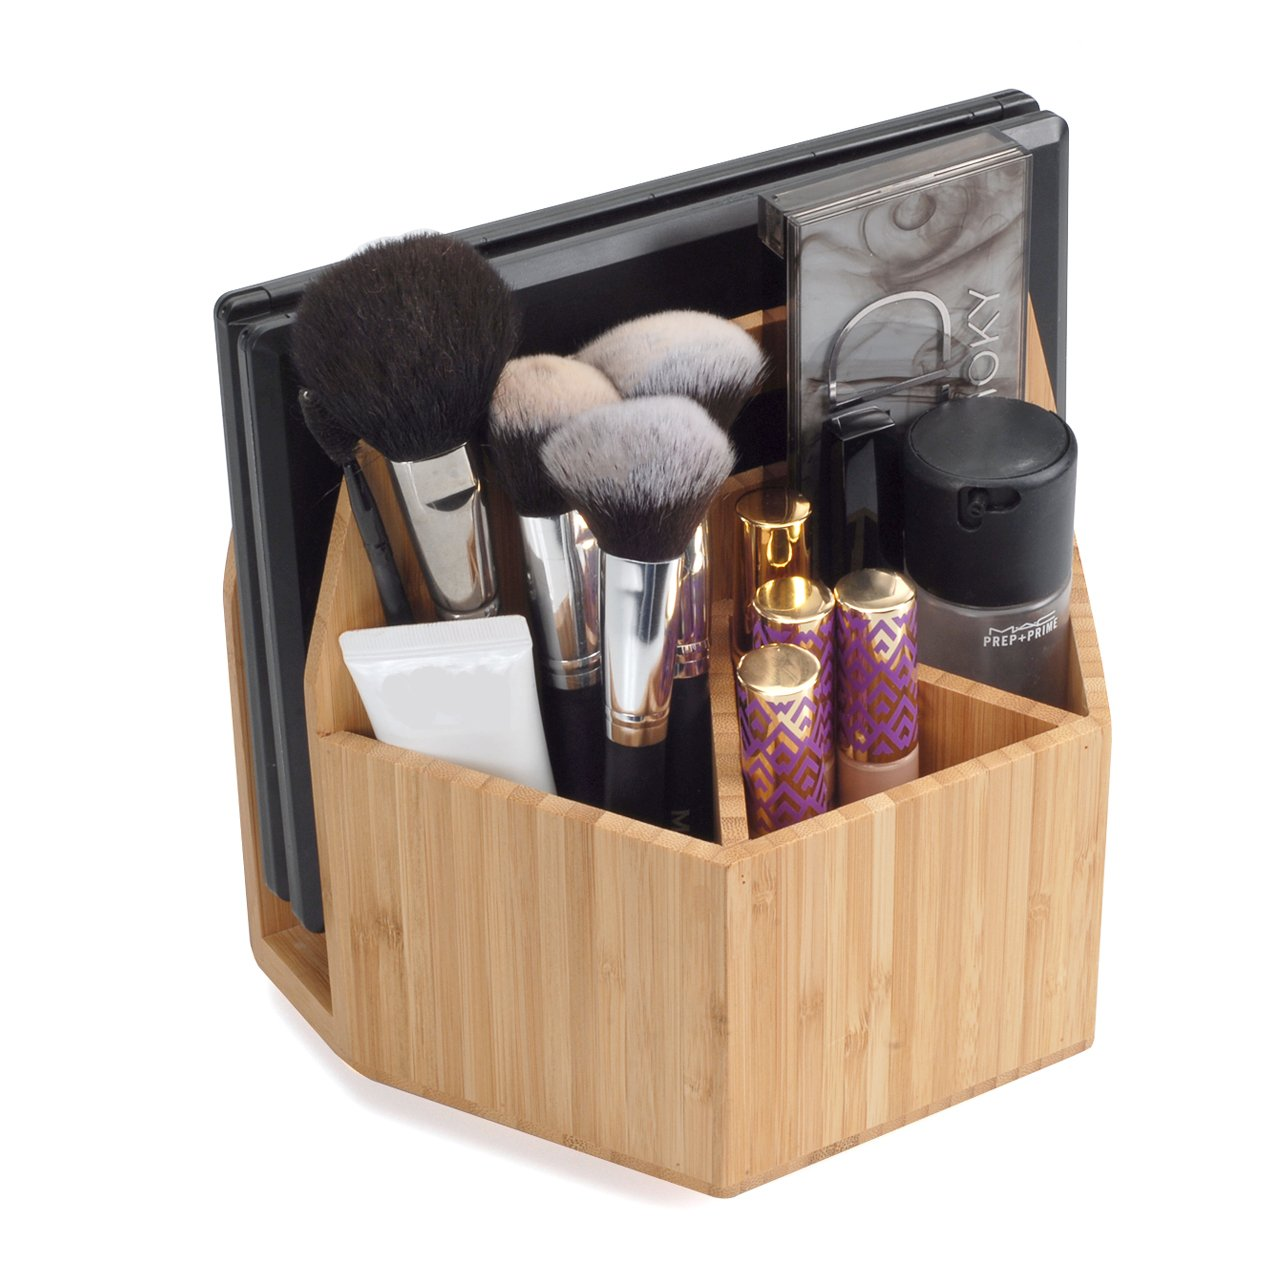 MobileVision Bamboo Make Up Organizer & Cosmetic Holder, Storage on Vanity Counter or Bathroom, Multiple Compartments CE Supply 1862FF